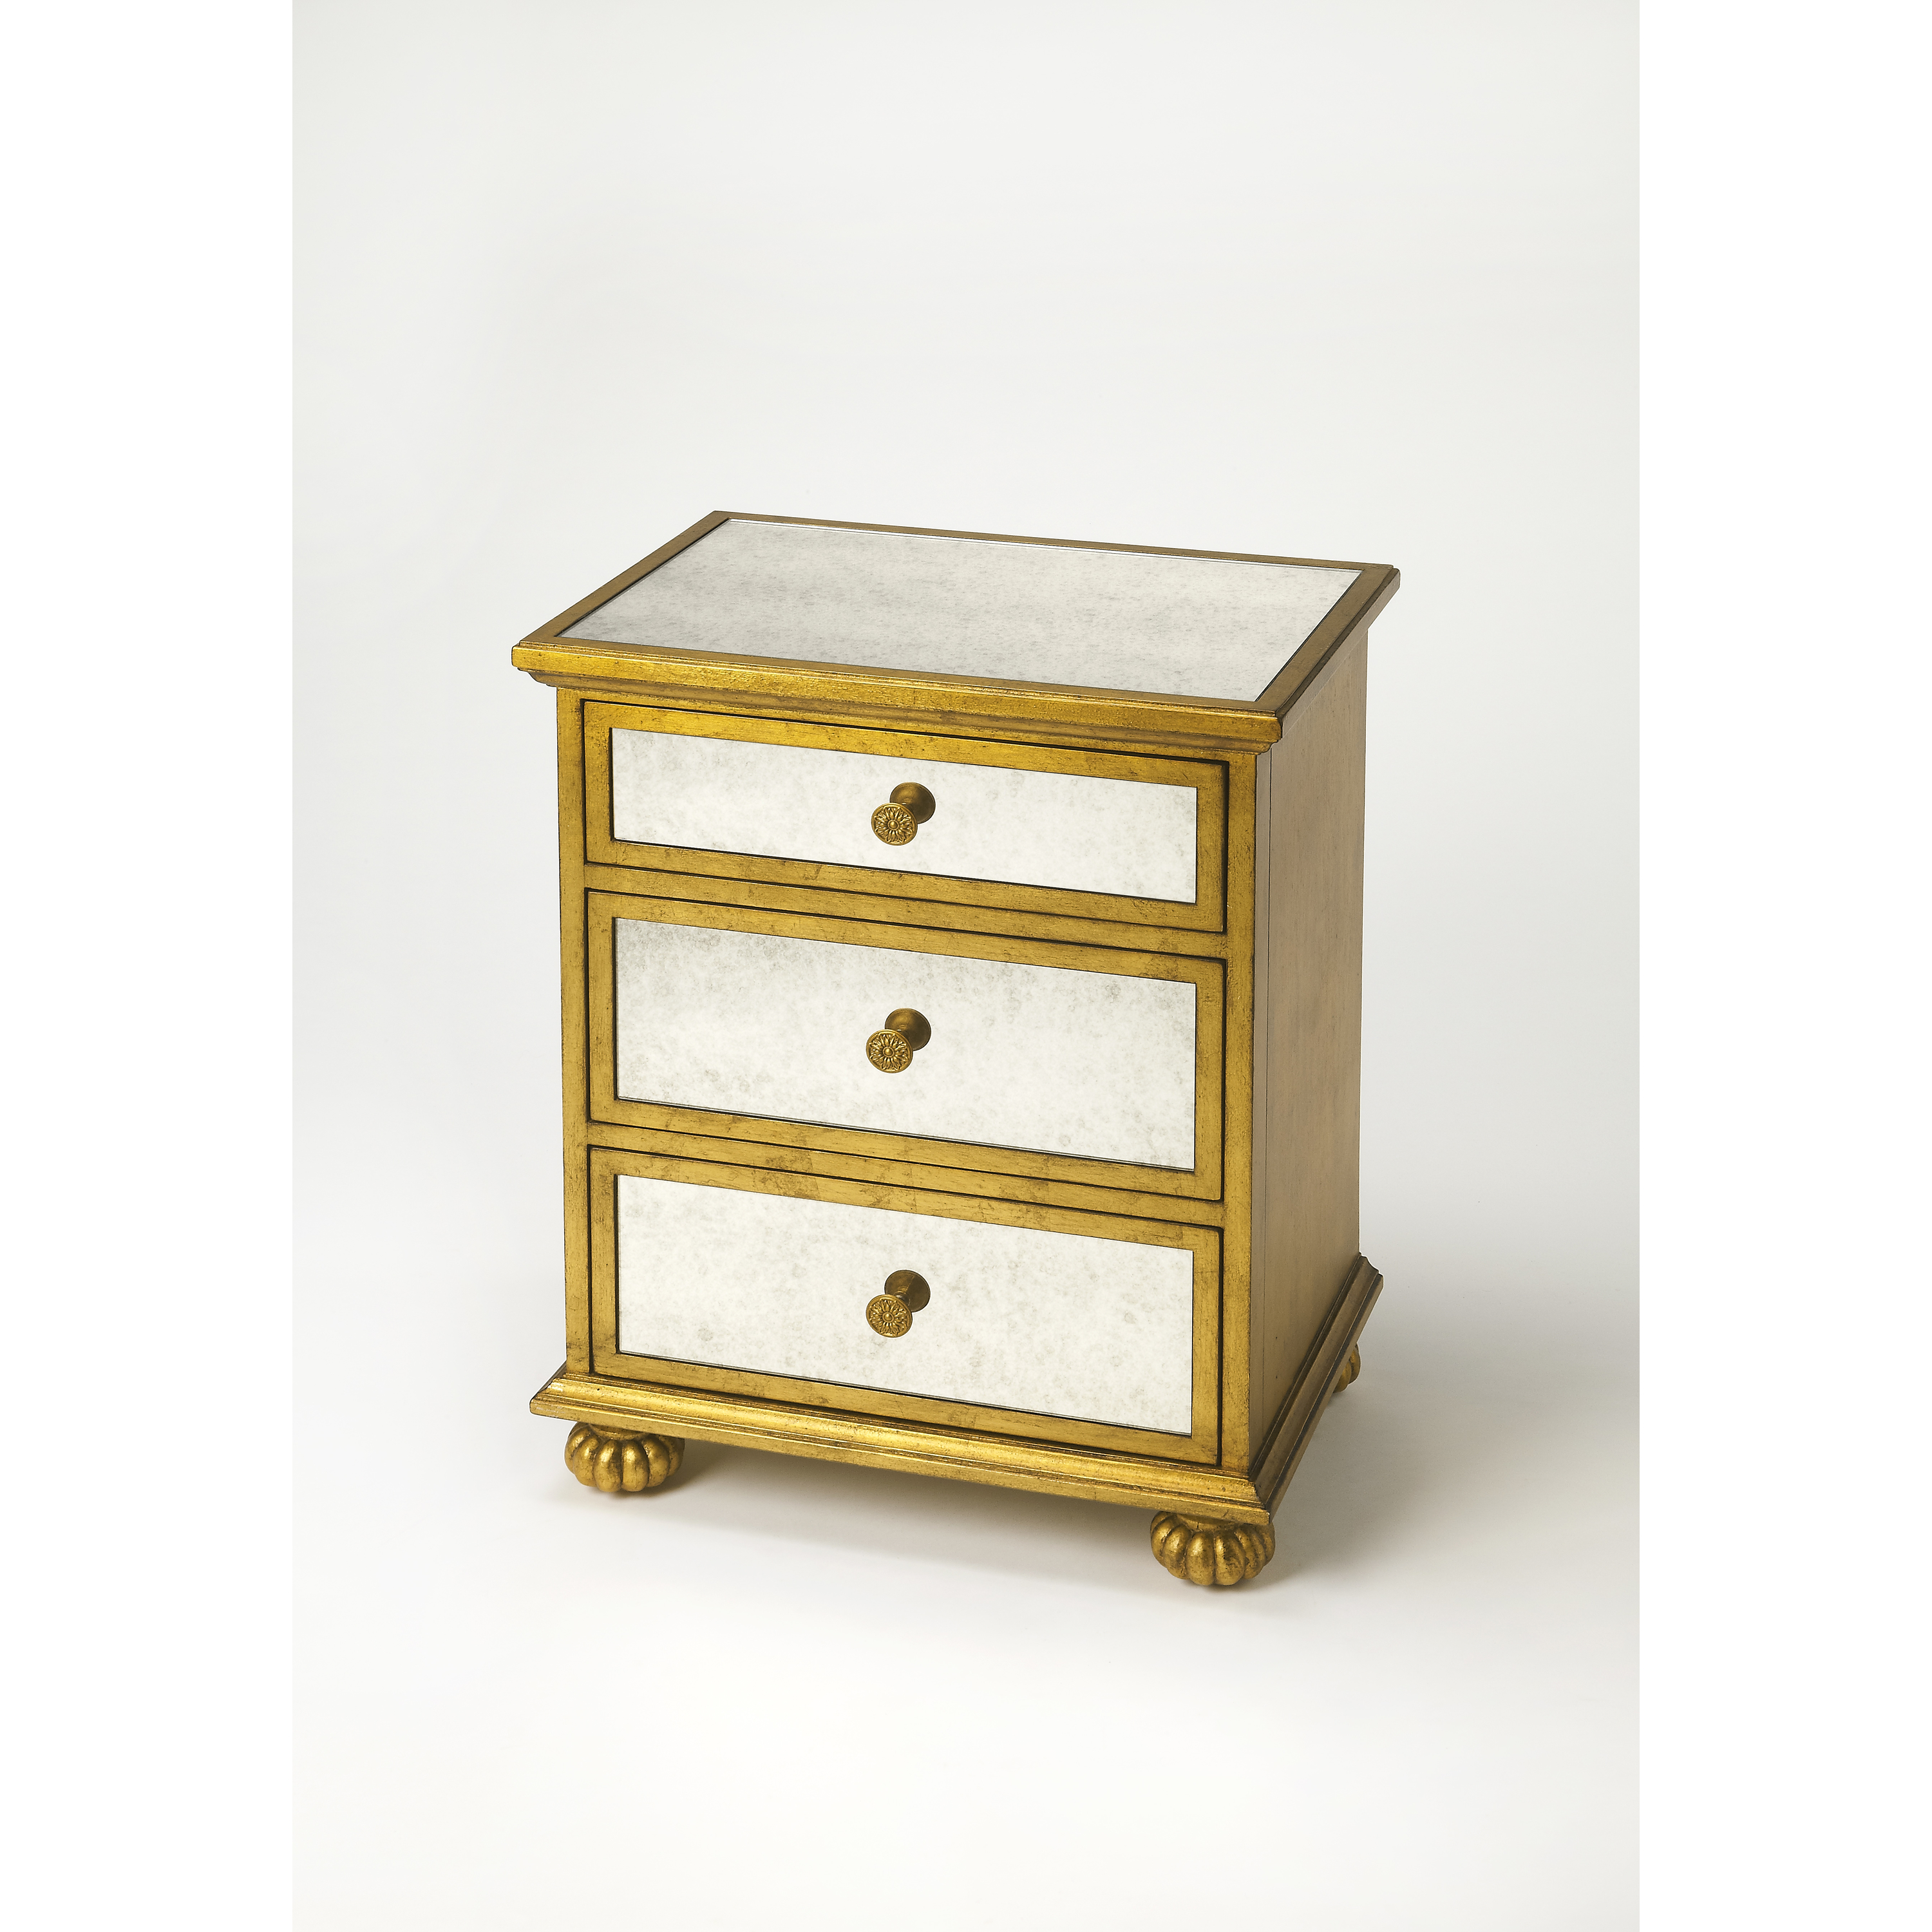 Butler Grable Gold Leaf Accent Chest